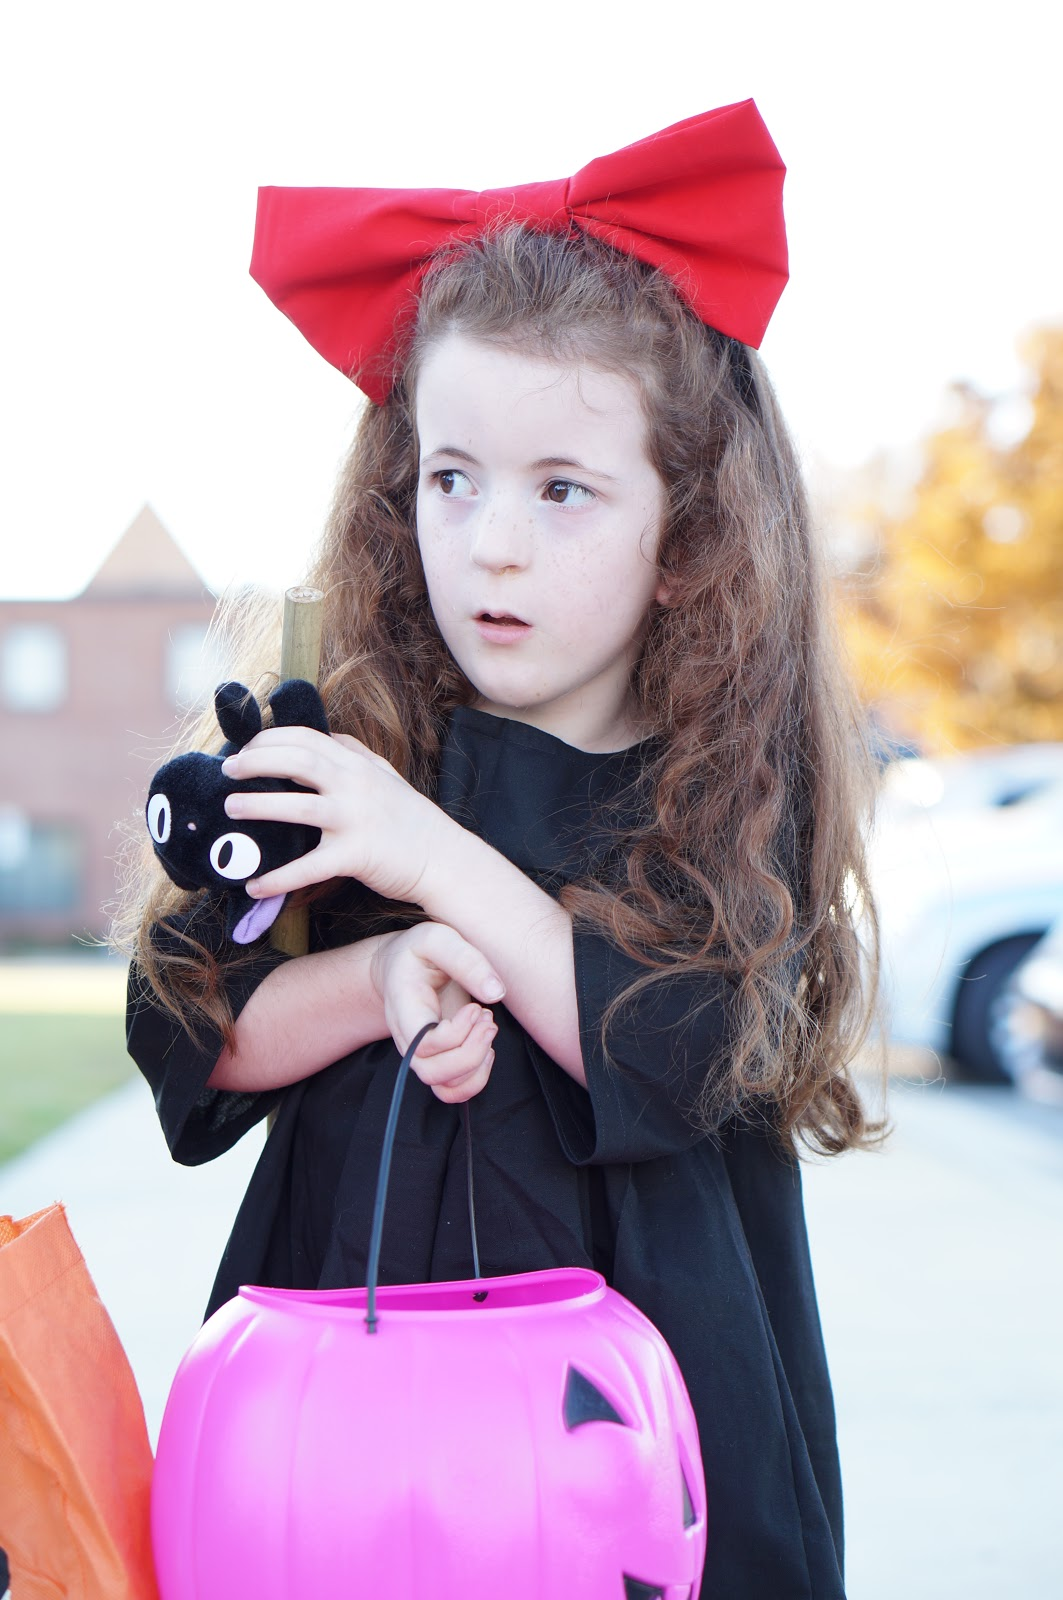 Rebecca Lately Halloween Costumes Homemade Ghostbusters Proton Pack Homemade Kiki's Delivery Service